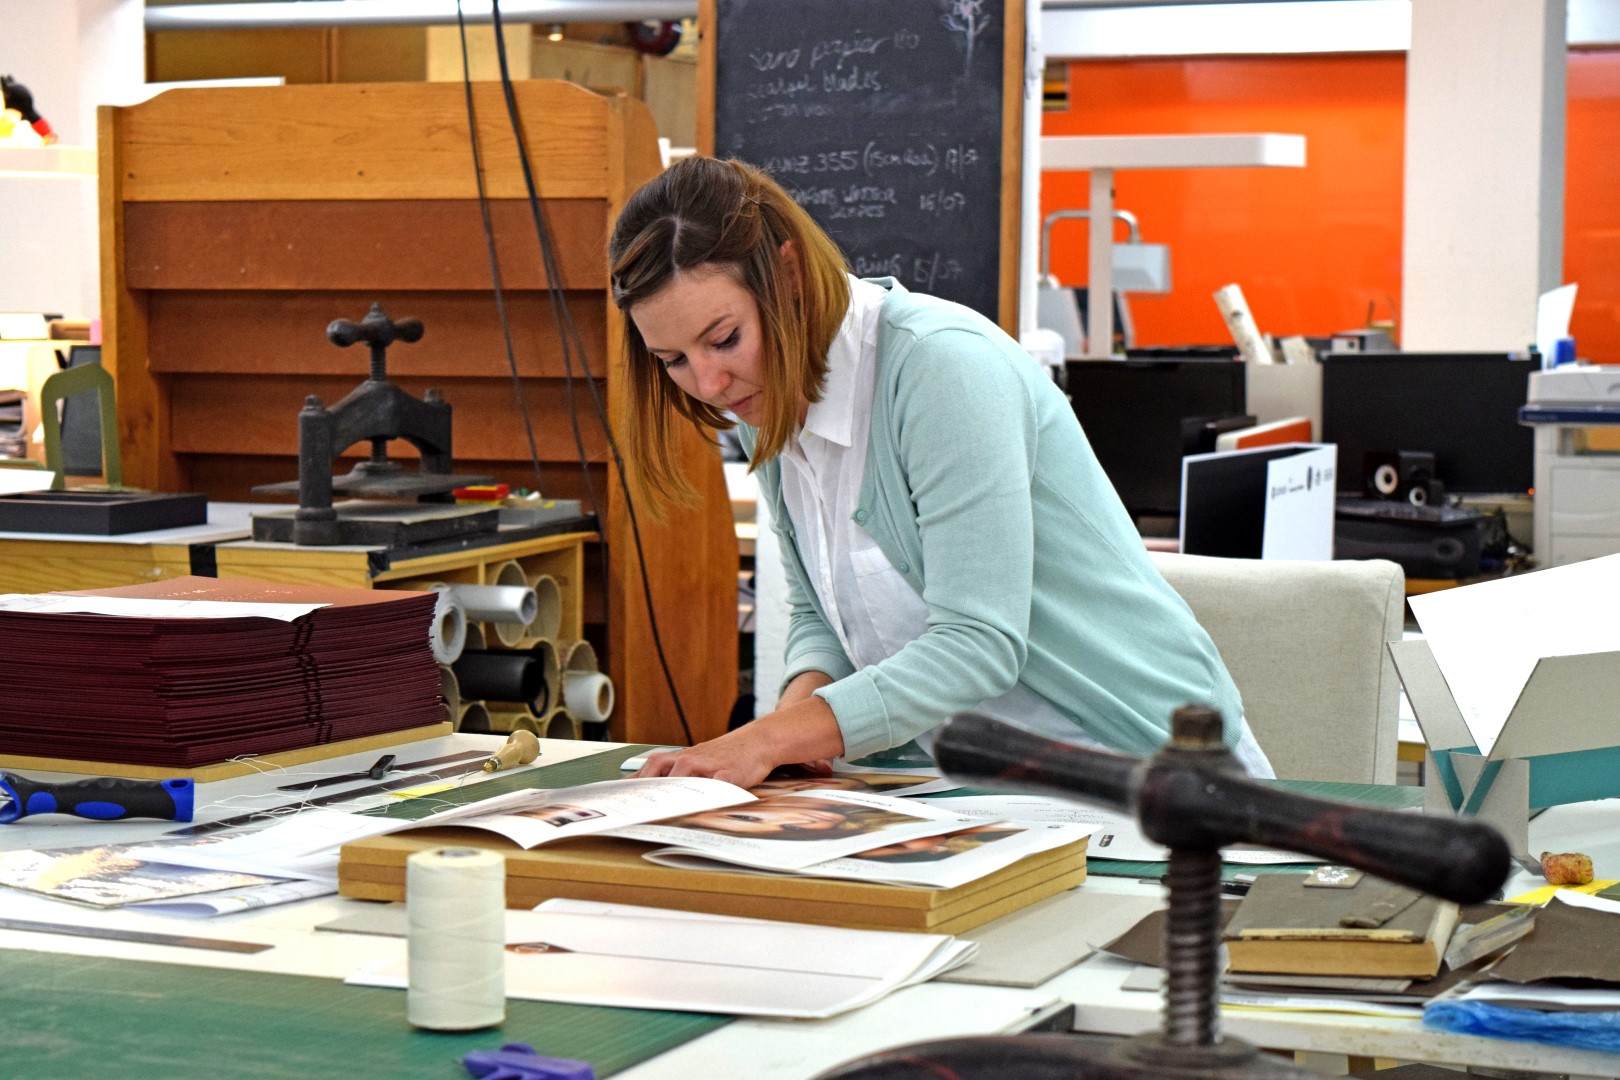 The Bindery in Production